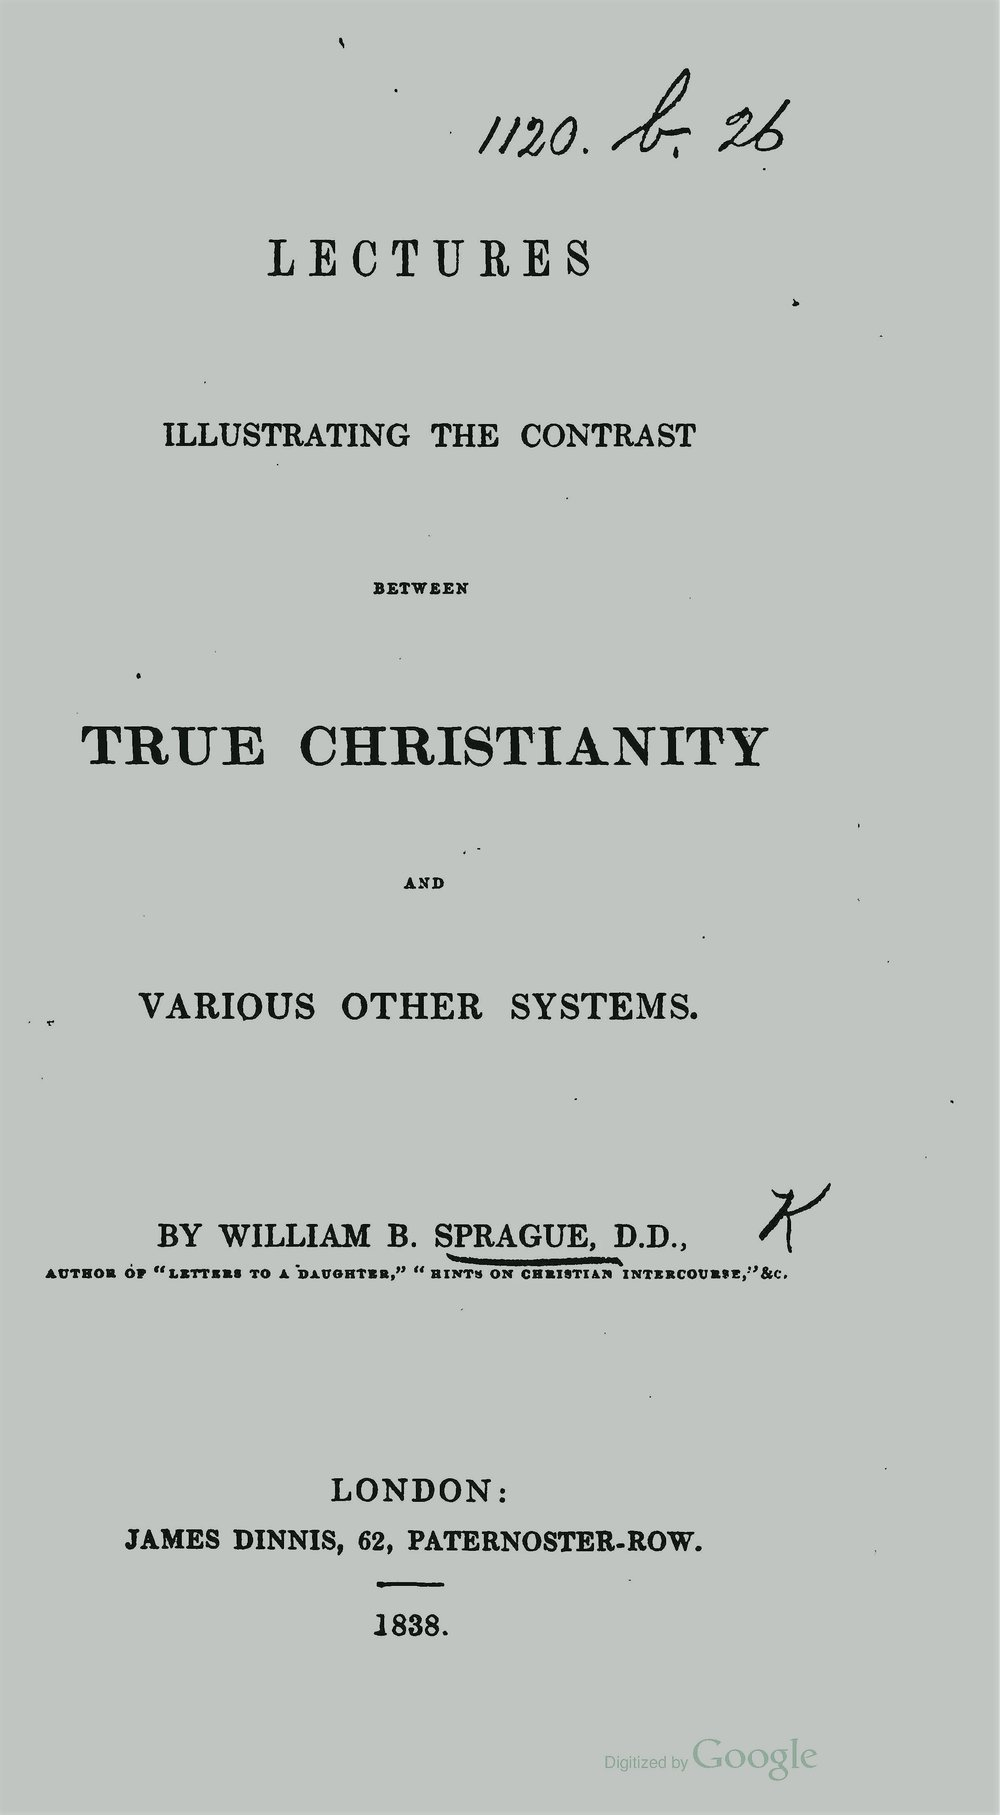 Sprague, William Buell, Lectures Illustrating the Contrast Between True Christianity and Various Other Systems Title Page.jpg